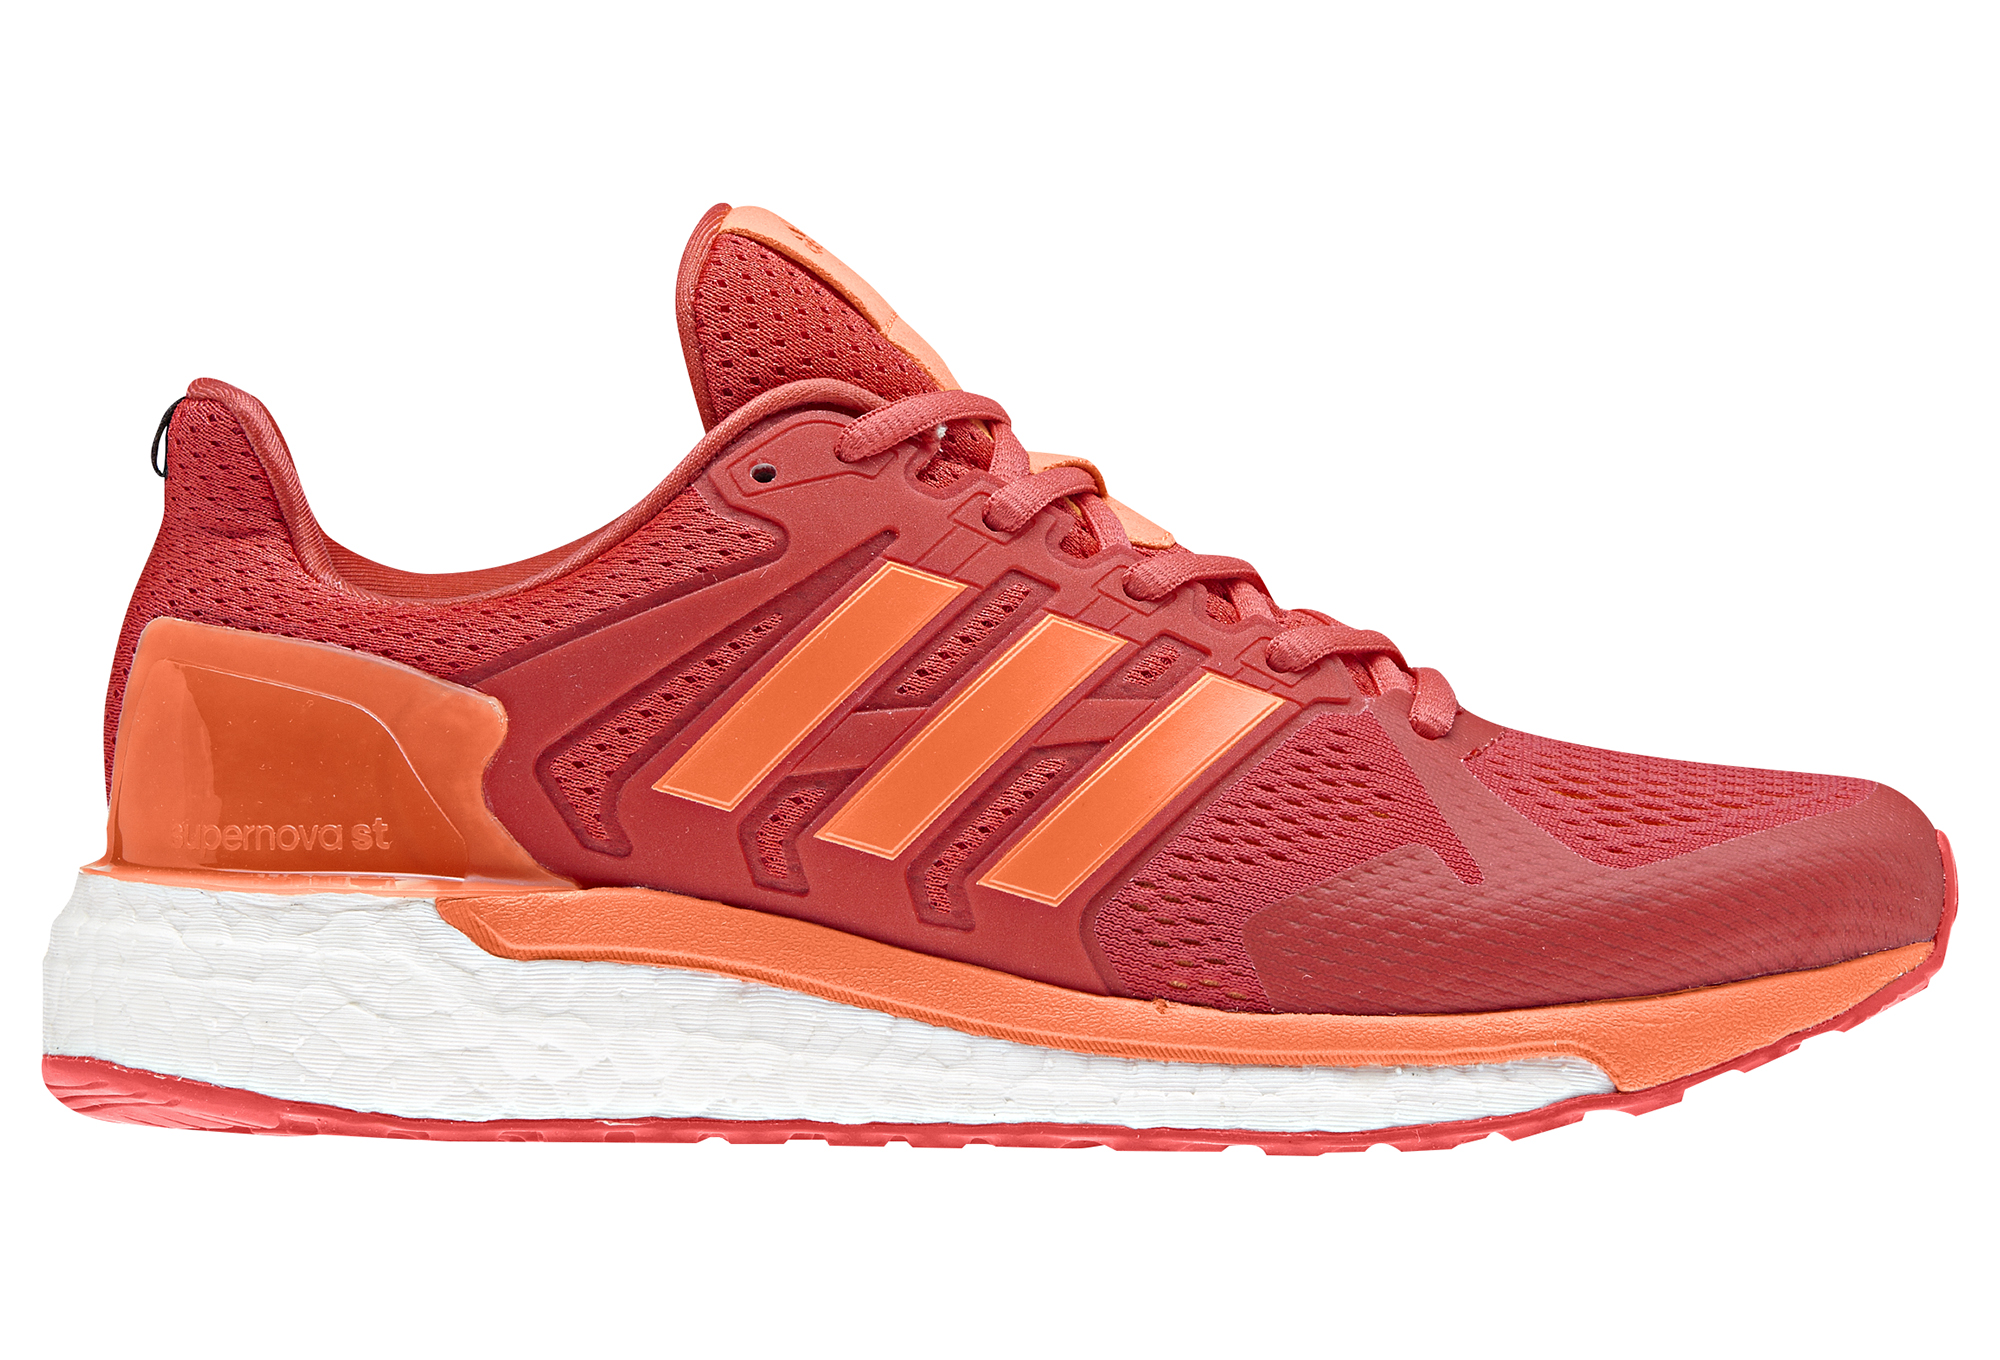 chaussures de running femme adidas running supernova st rouge orange. Black Bedroom Furniture Sets. Home Design Ideas